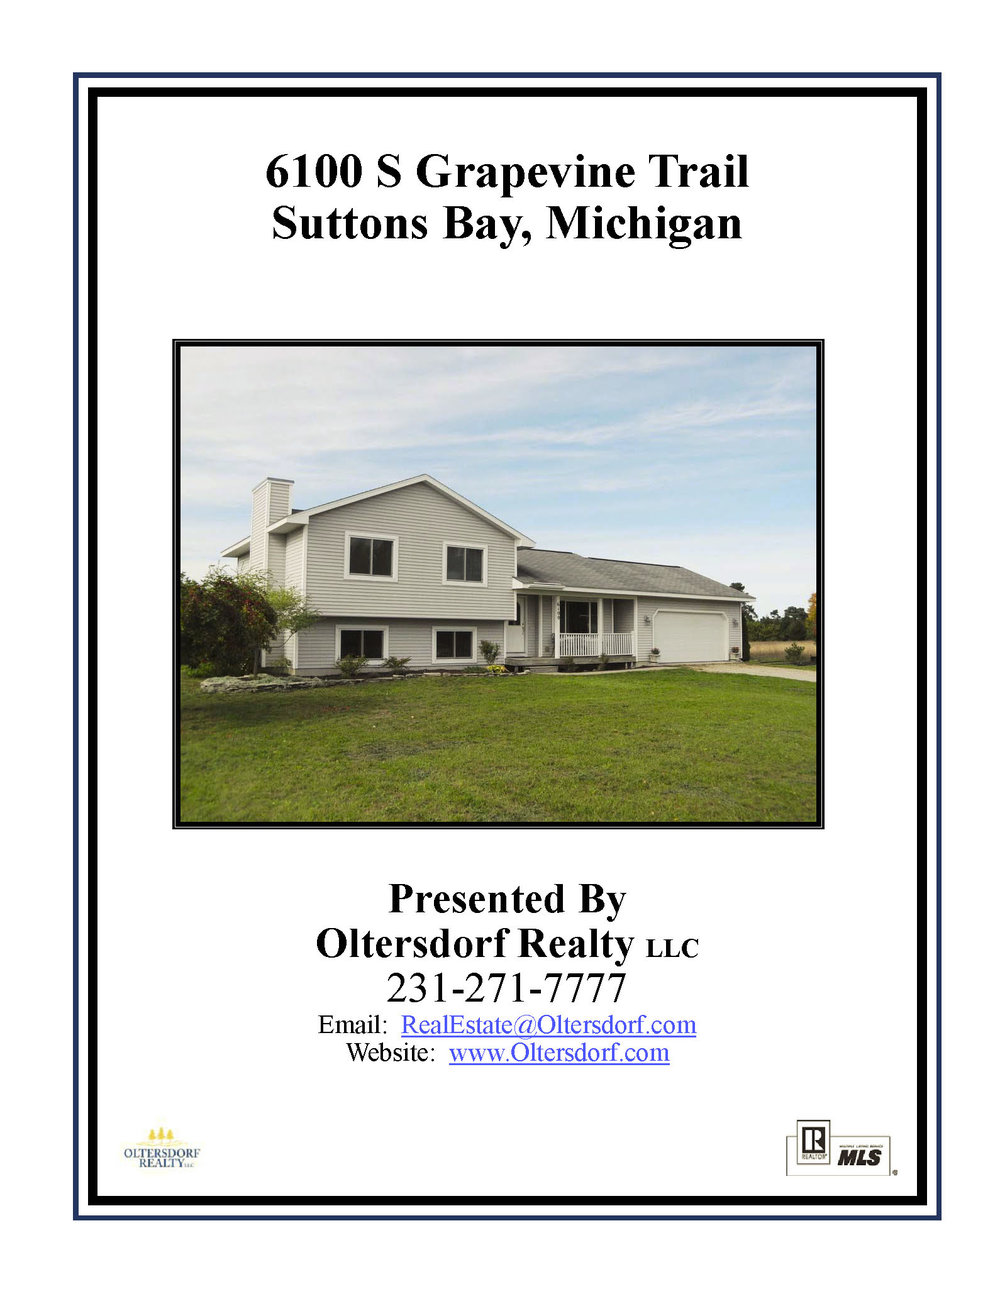 6100 S Grapevine Trail, Suttons Bay, Leelanau County Home for sale by Oltersdorf Realty LLC - Marketing Packet (1).jpg